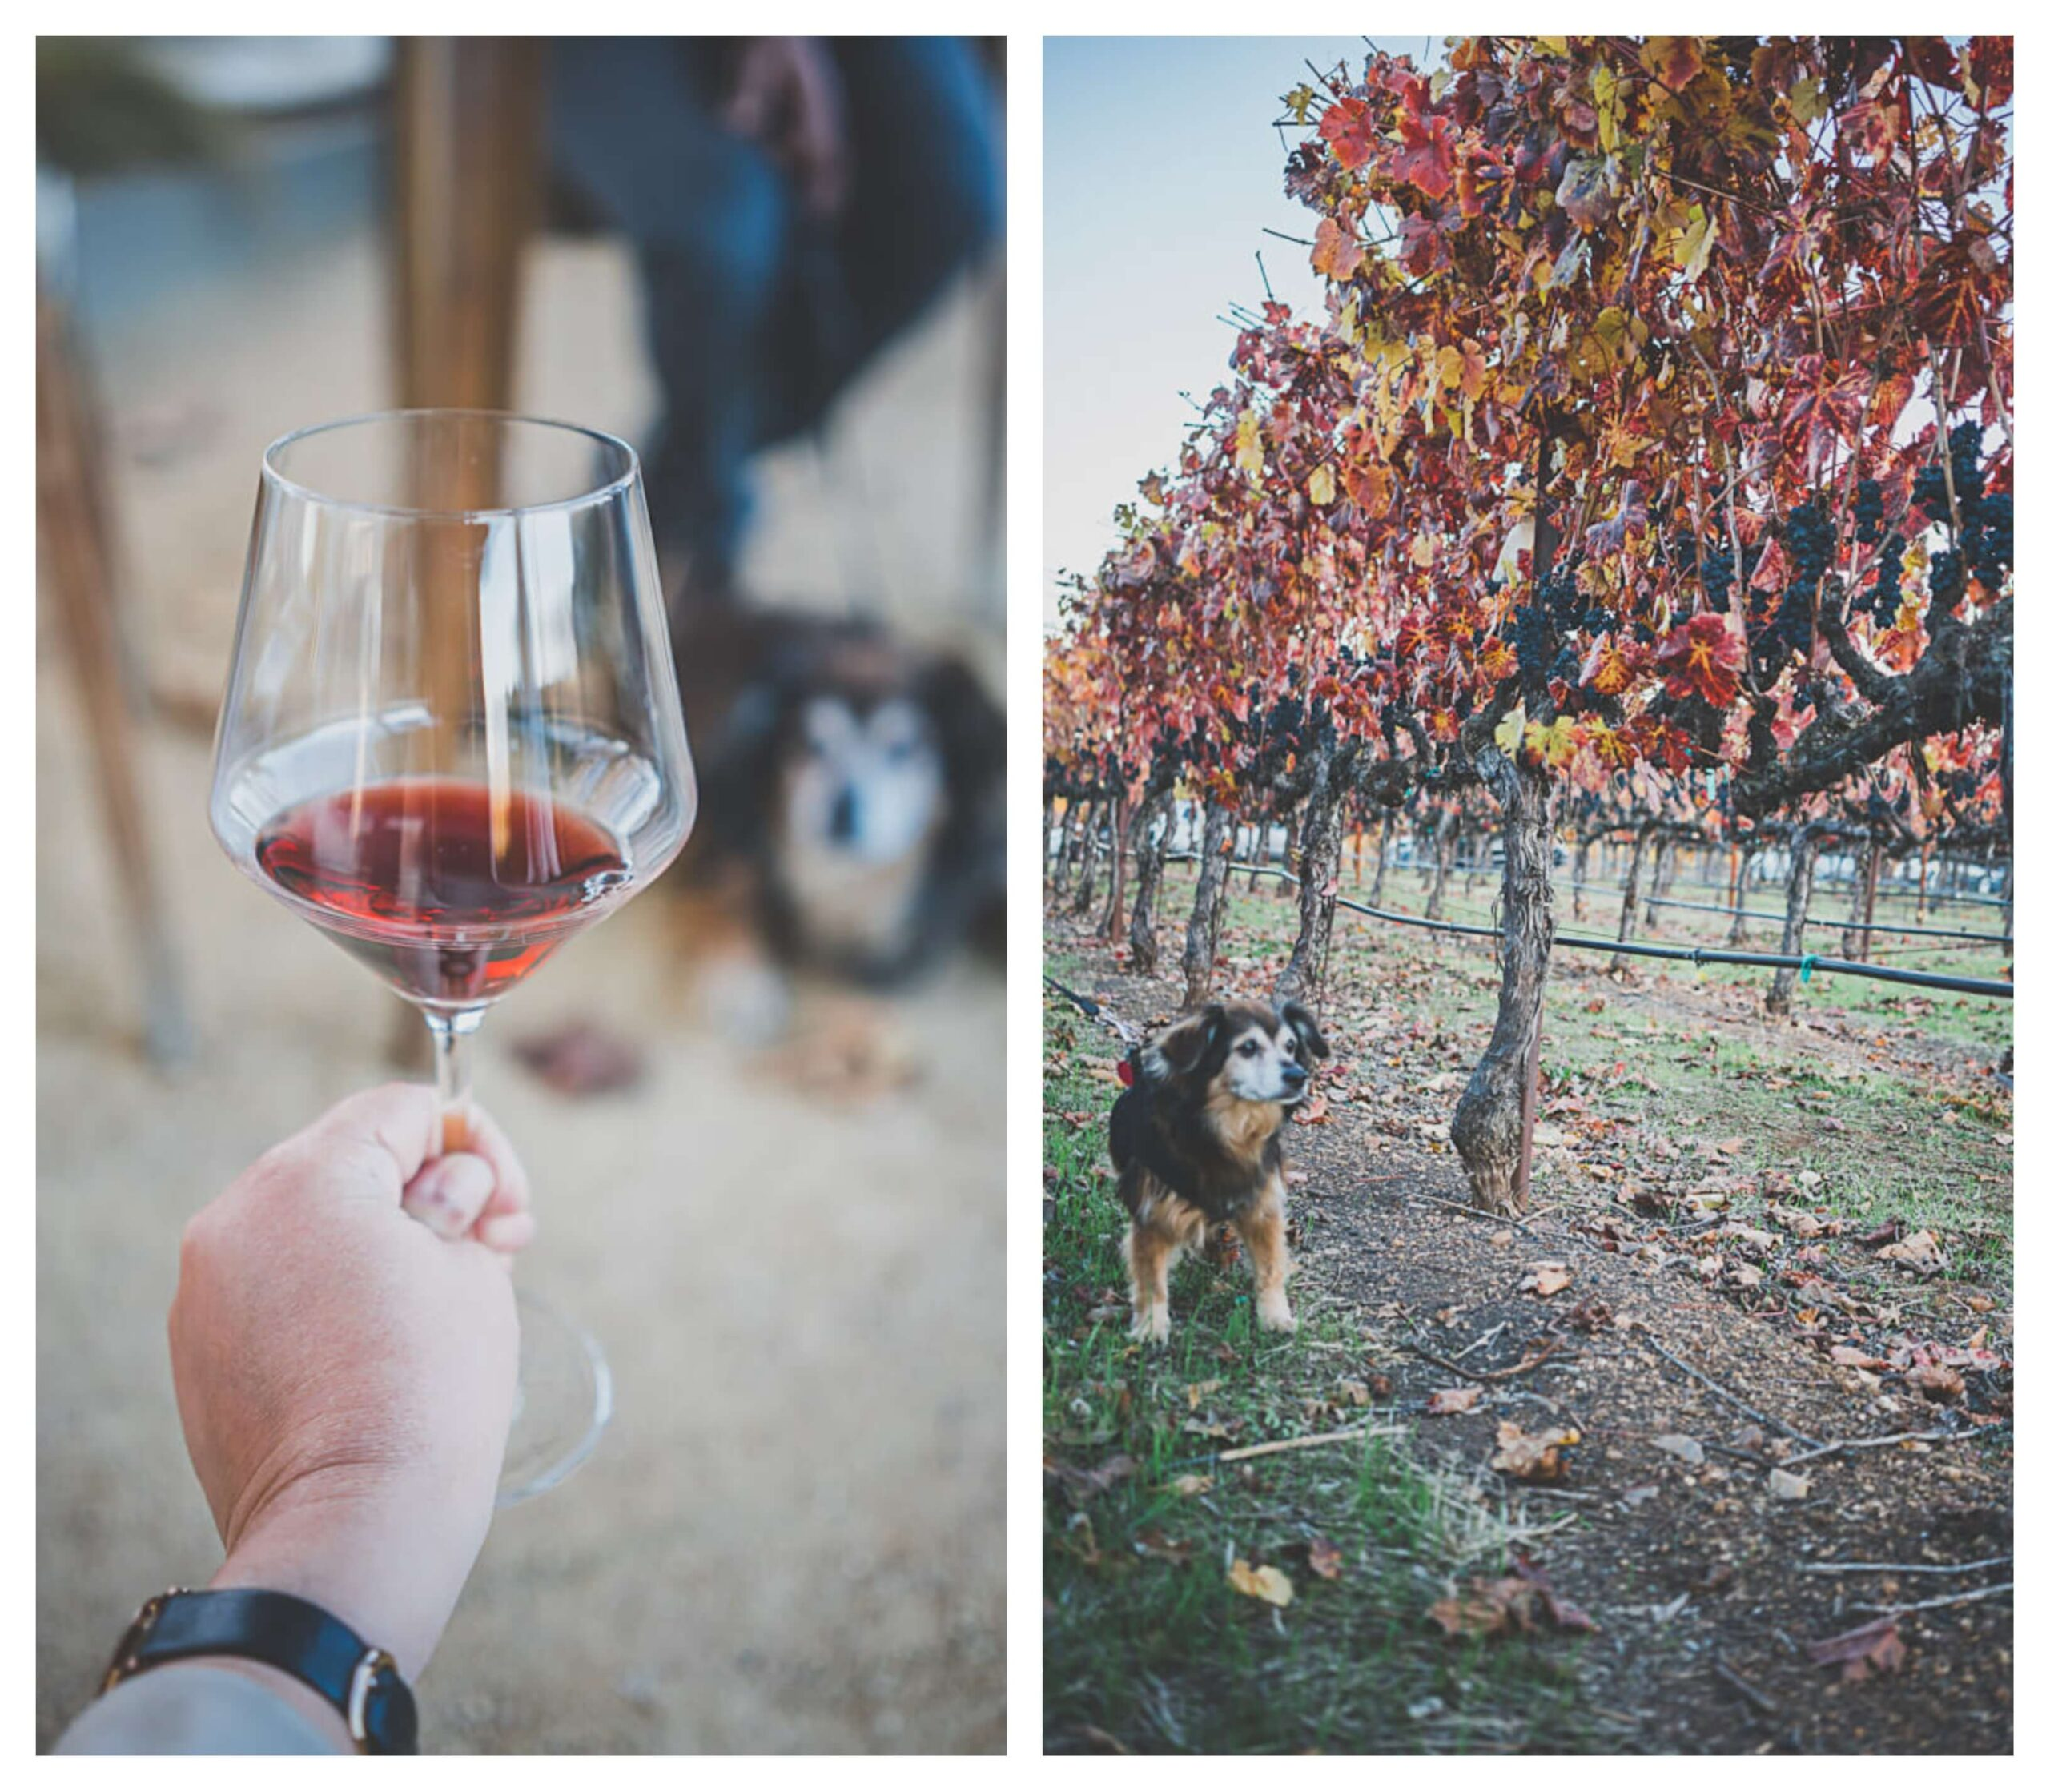 Dog friendly Russian Rivery valley wineries in Sonoma, MacRostie Winery